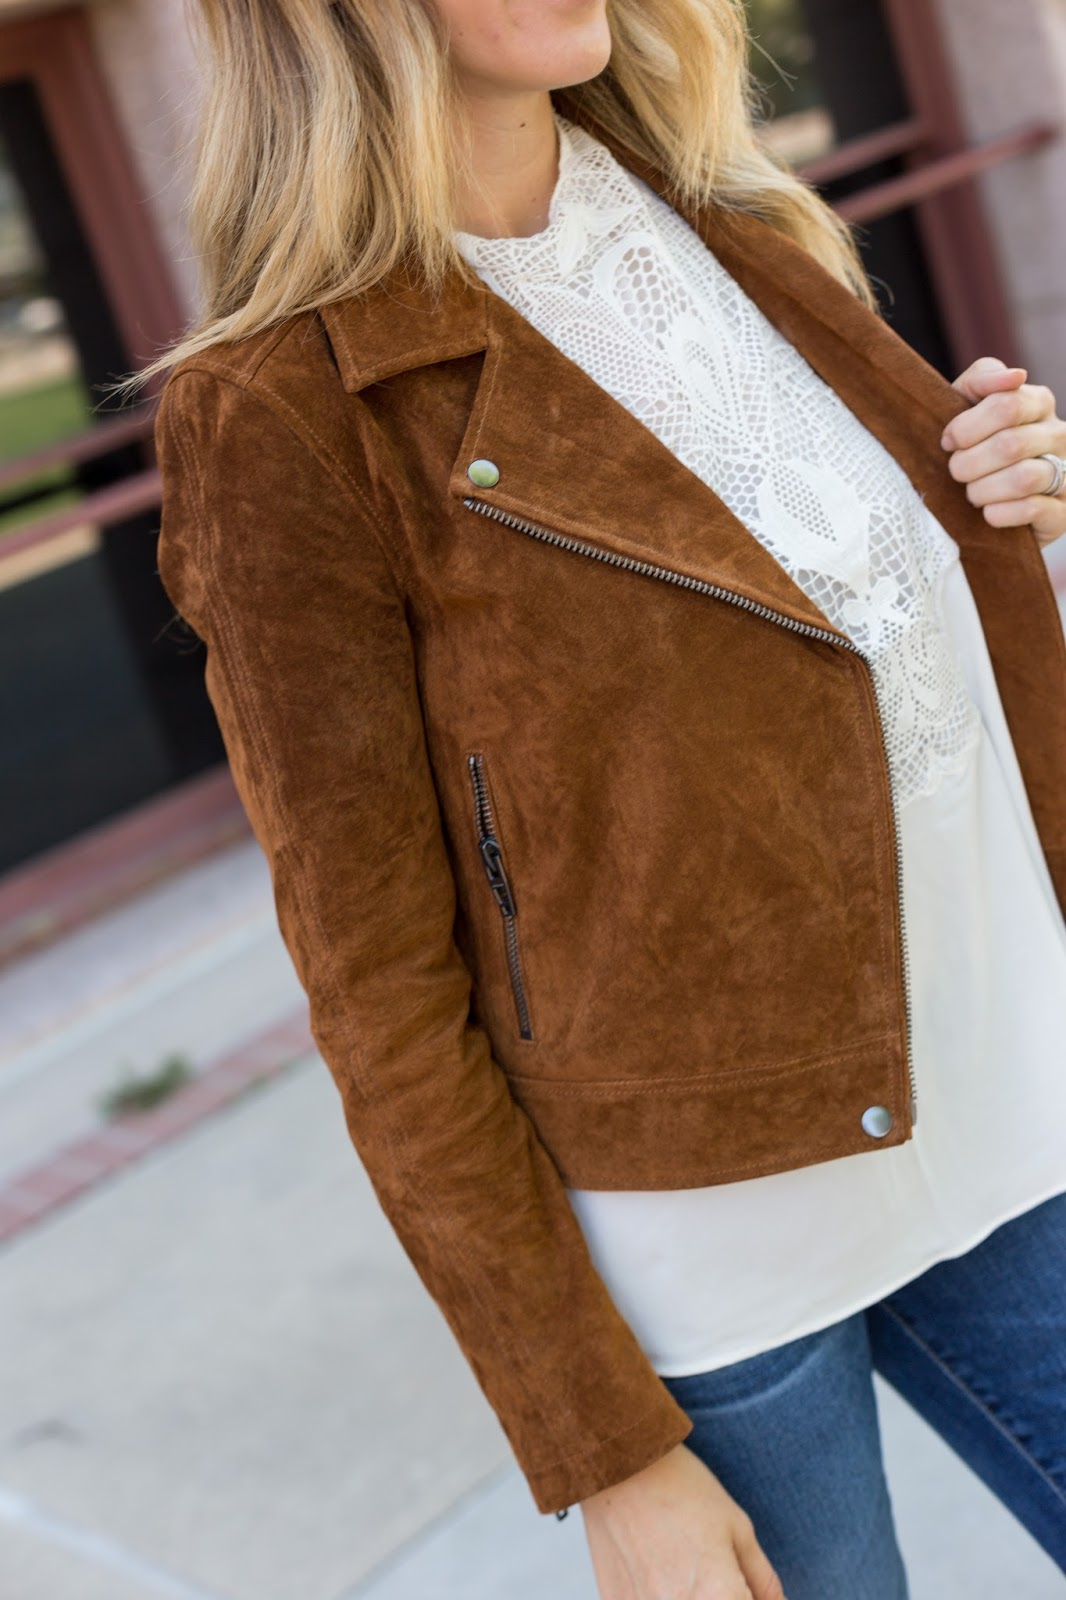 Spice Colored Suede for Fall! - The Must Have Brown Suede Jacket For Fall by Colorado fashion blog